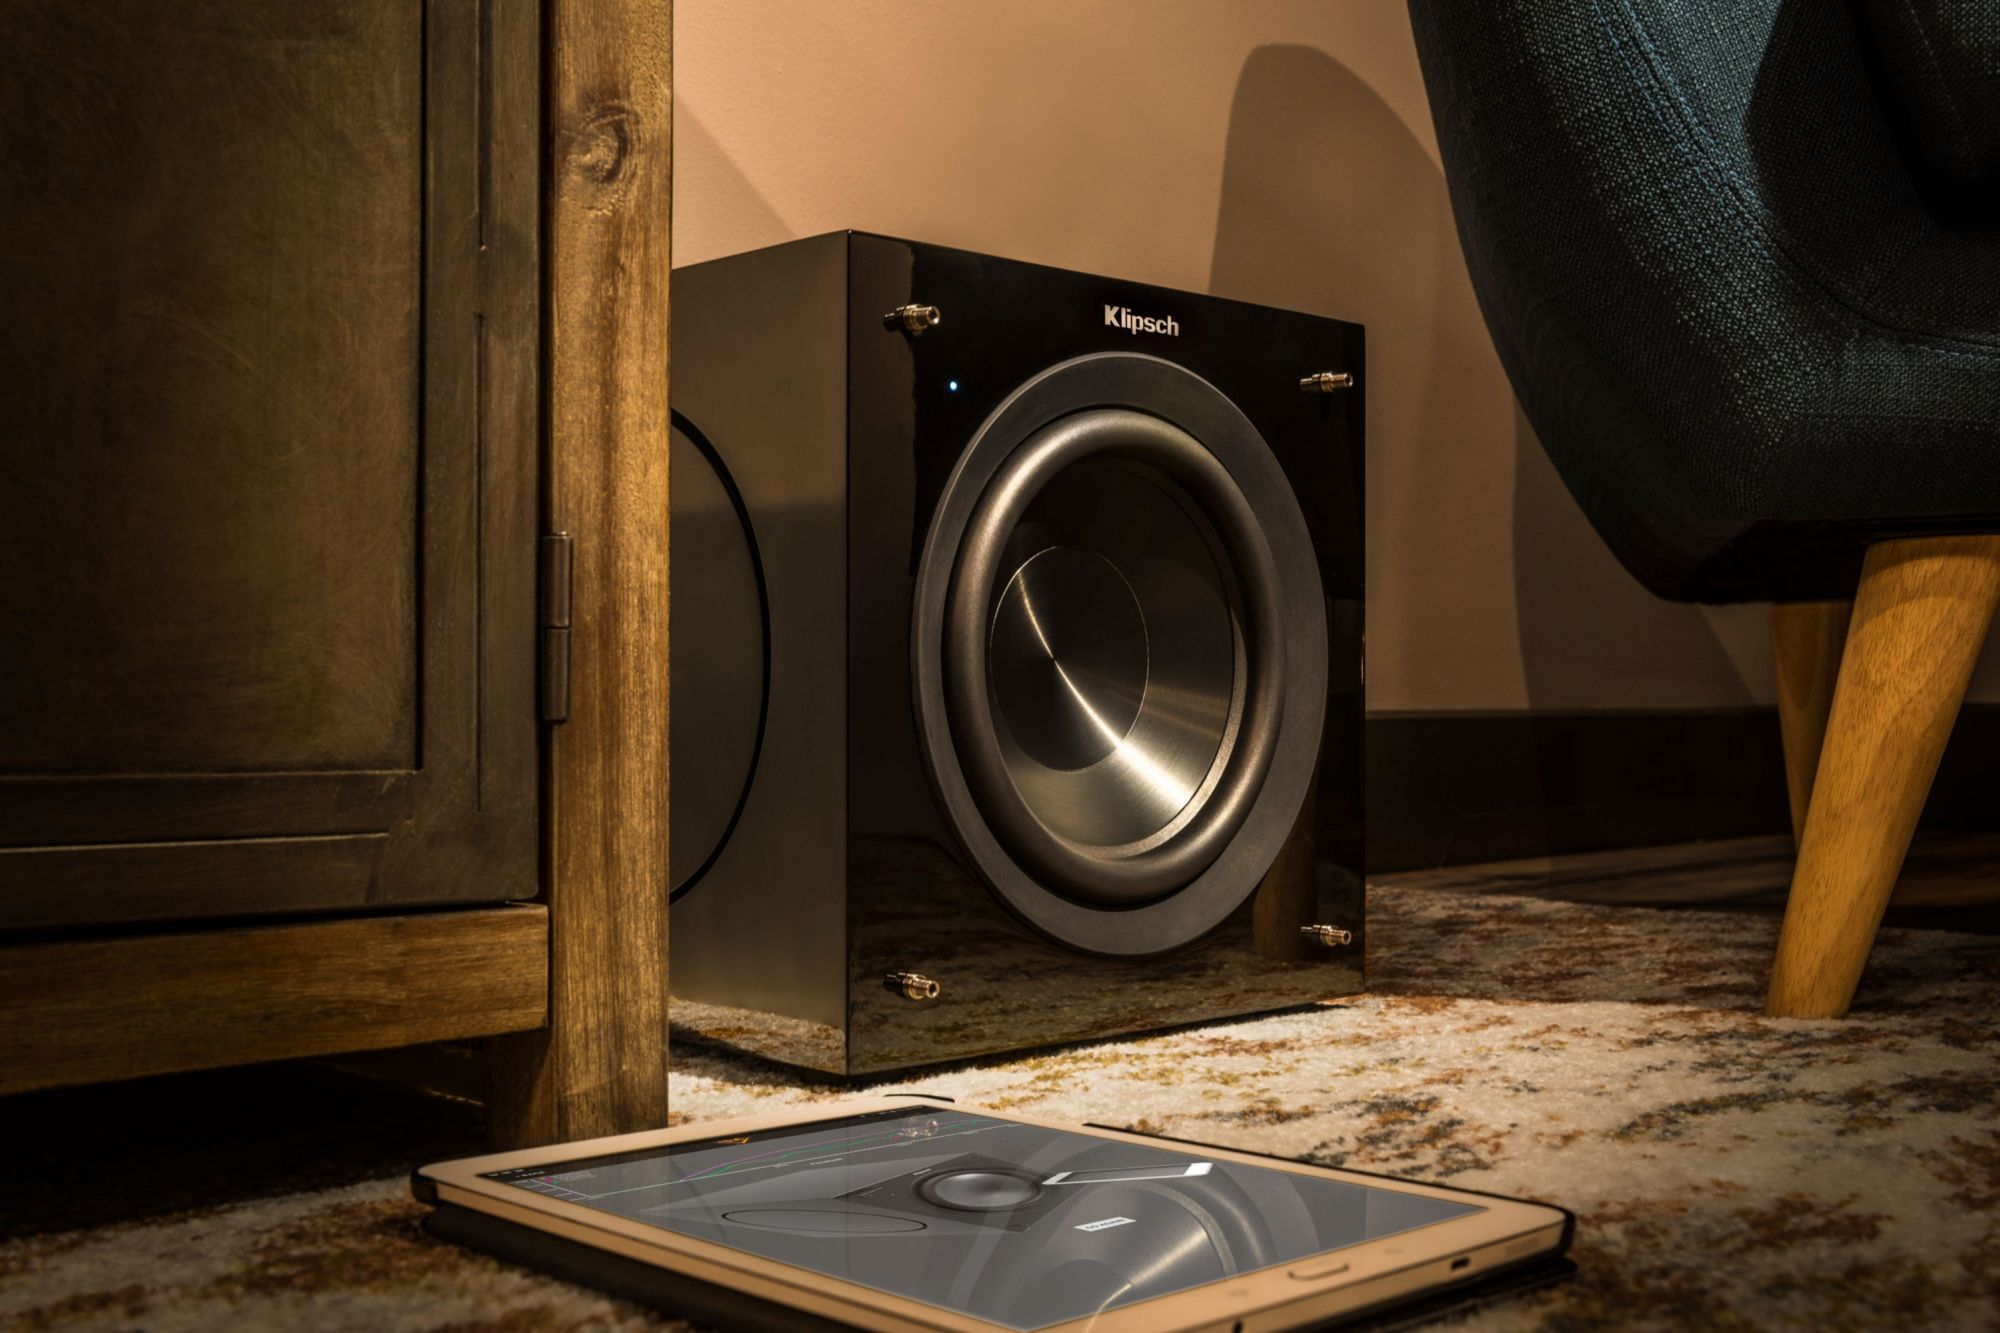 C-308ASWi subwoofer on the floor next to a tablet